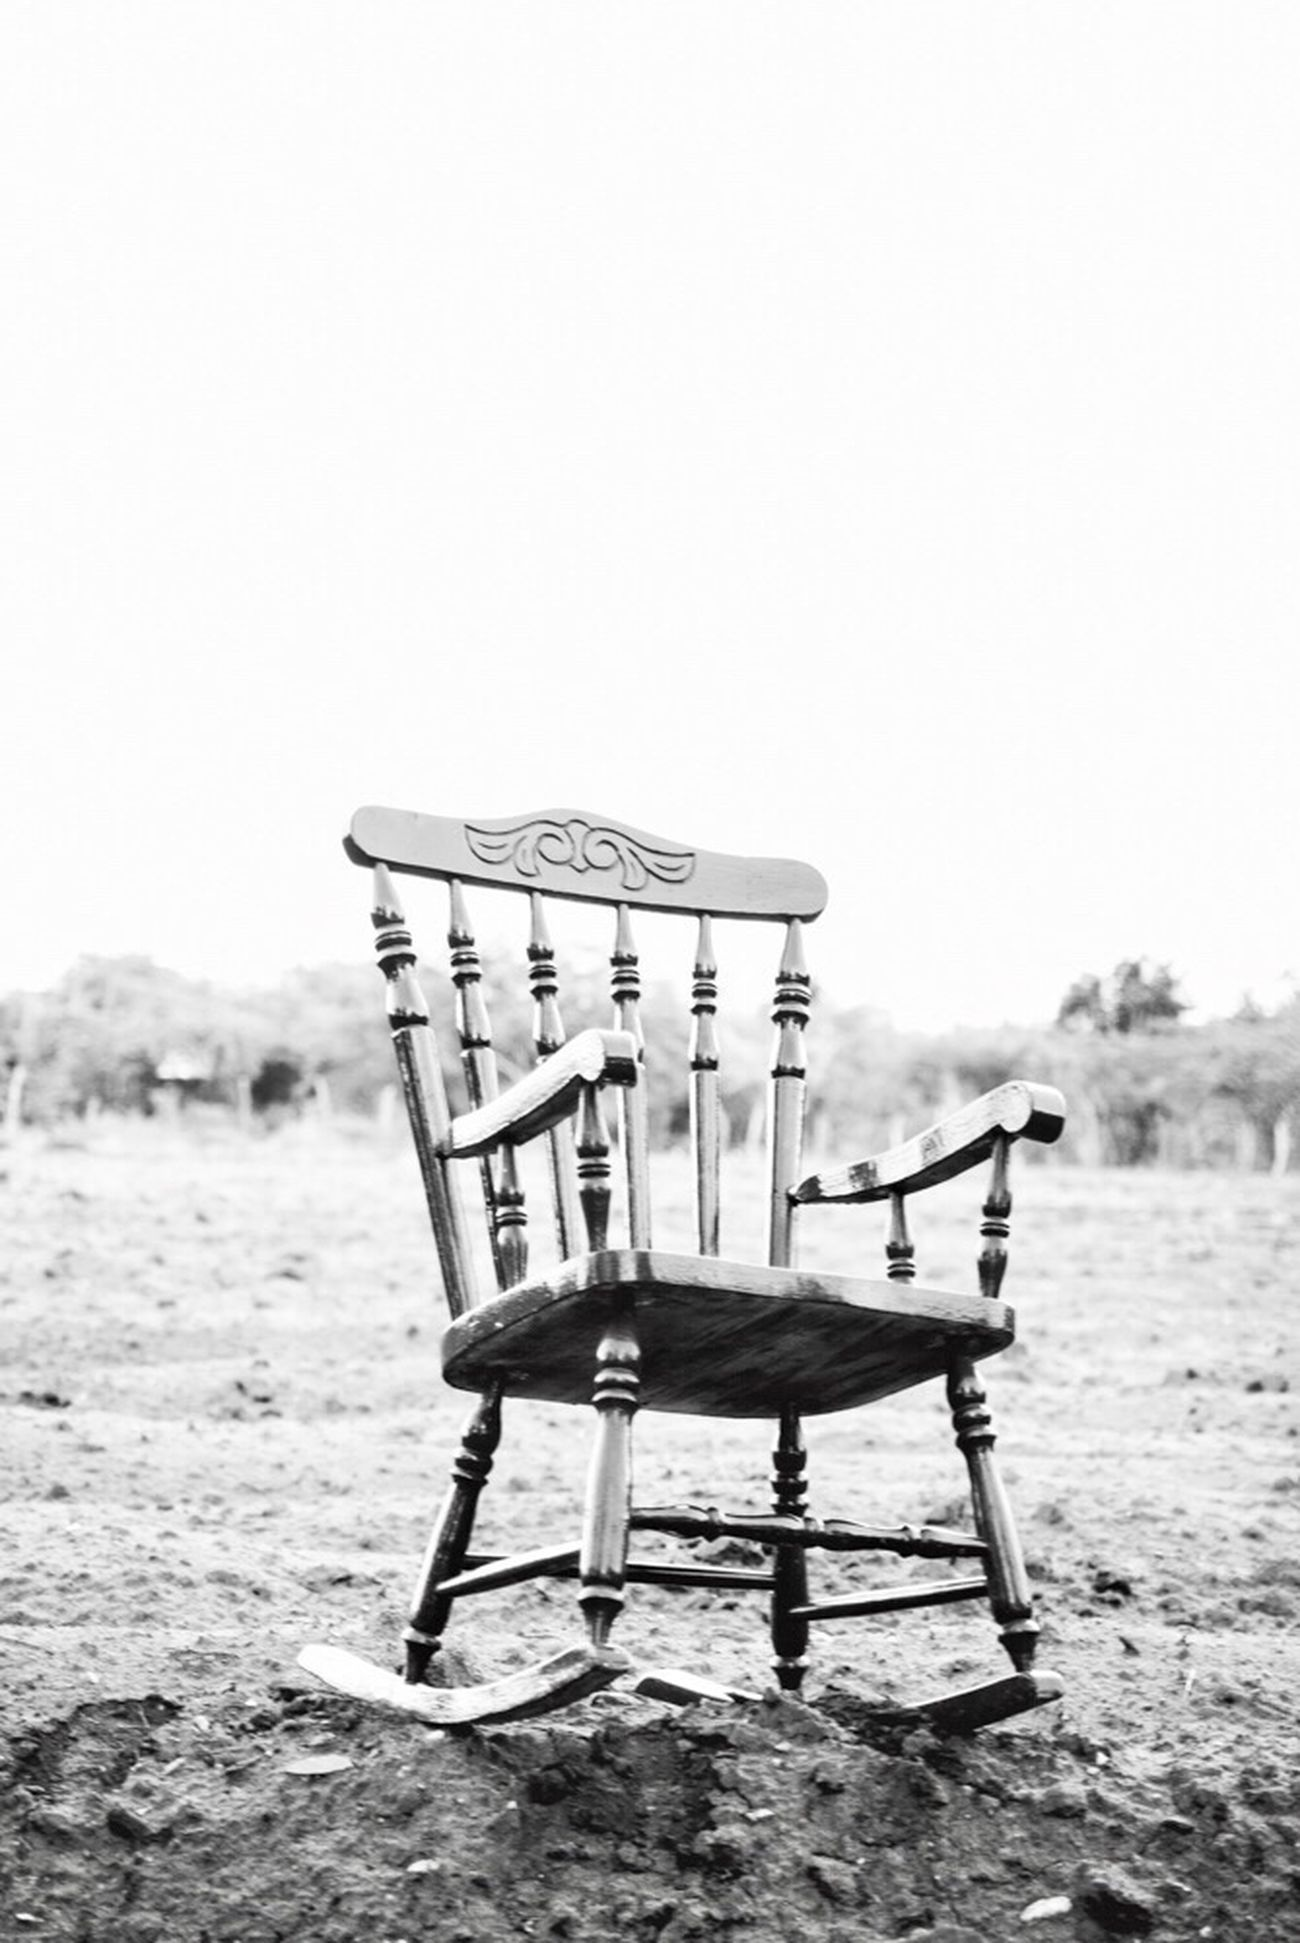 Black and white chair photography - Rocking Chair Blackandwhite Blackandwhite Photography Blancoynegro Contryside Monochrome Photography Monochrome_life